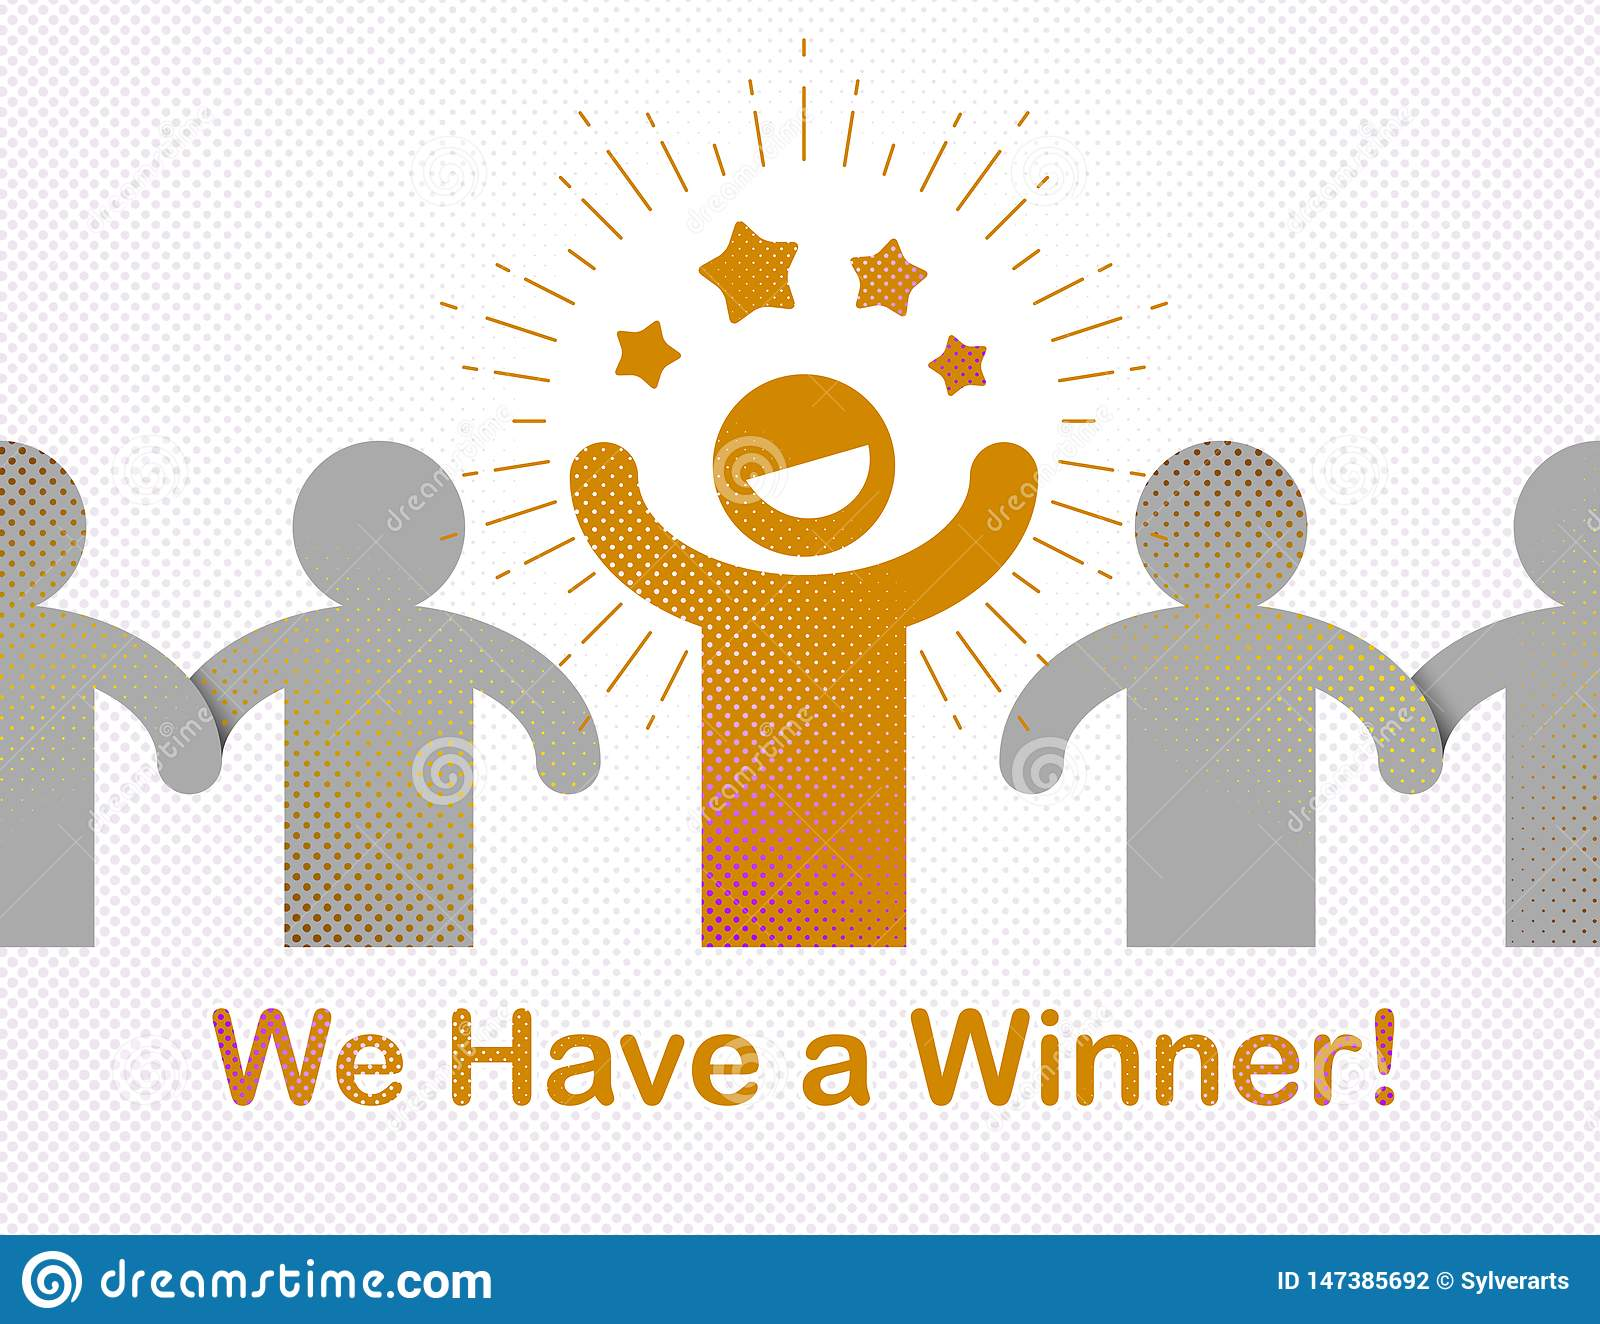 We have a winner vector concept of leadership, victory and success.